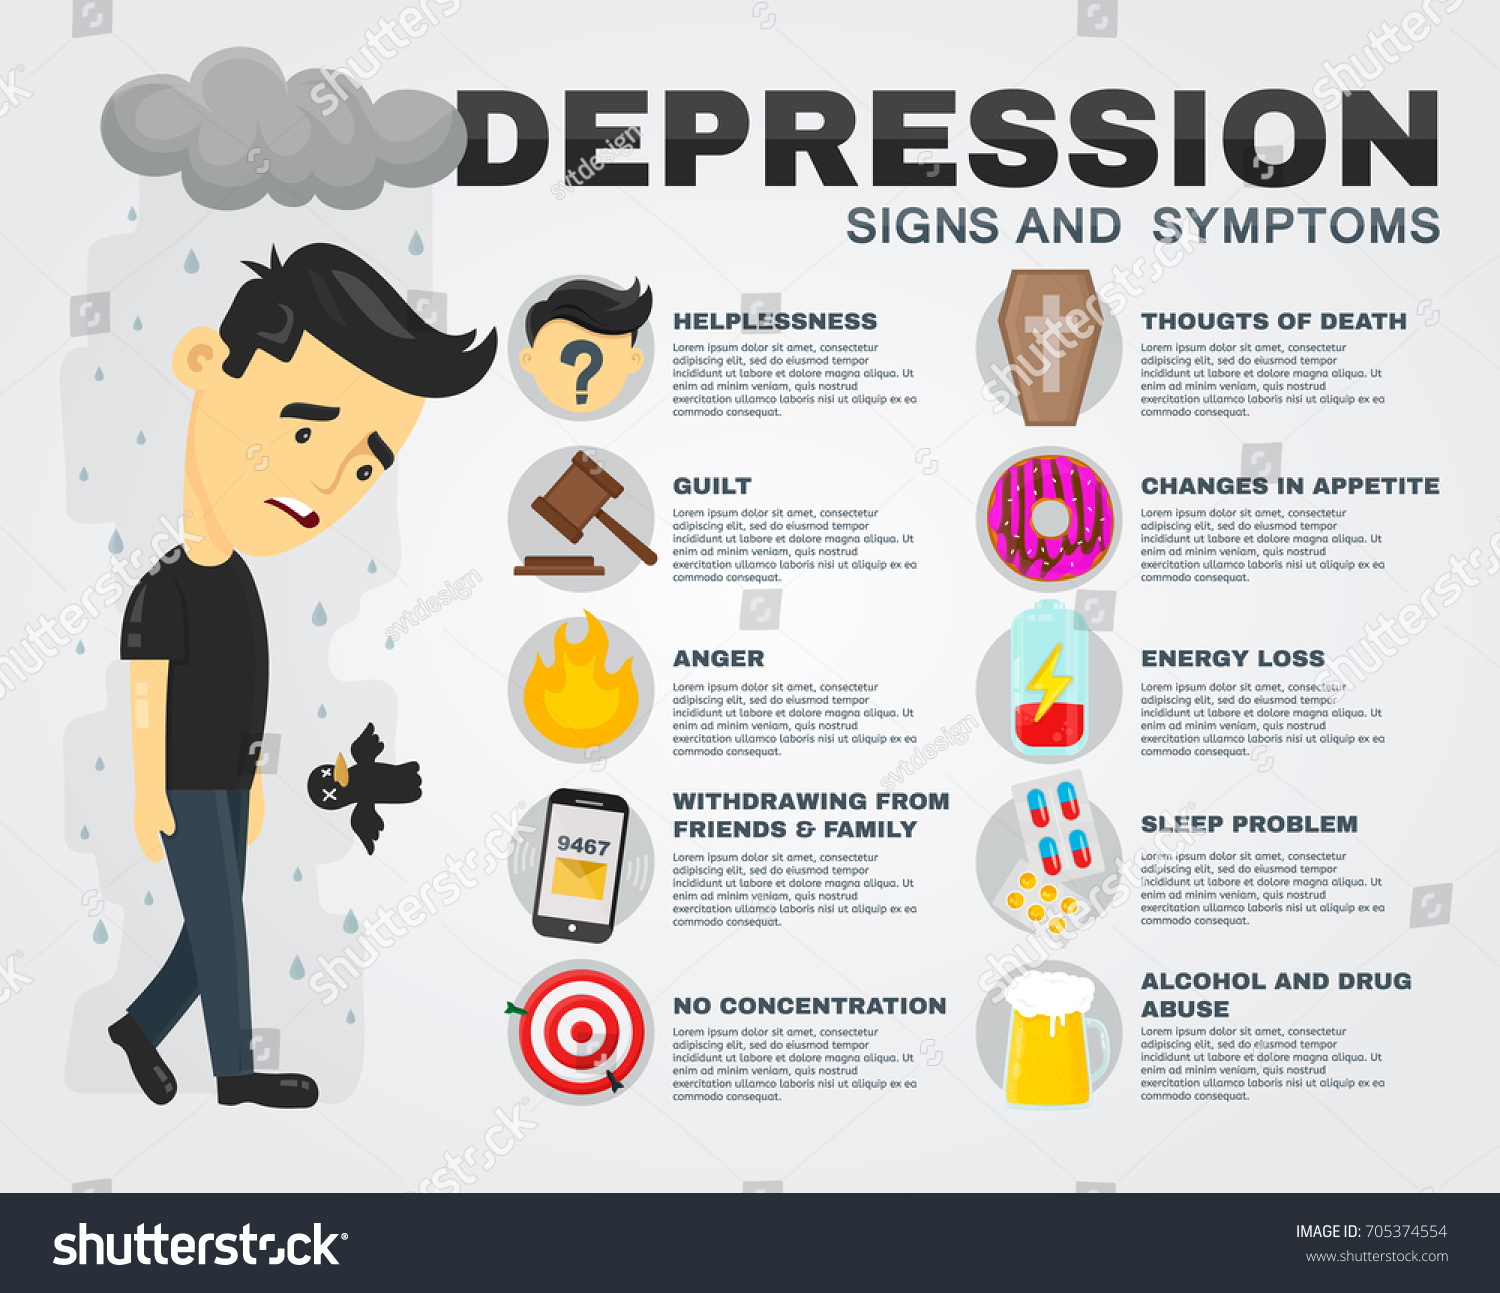 depression signs symptoms infographic concept flatのイラスト素材